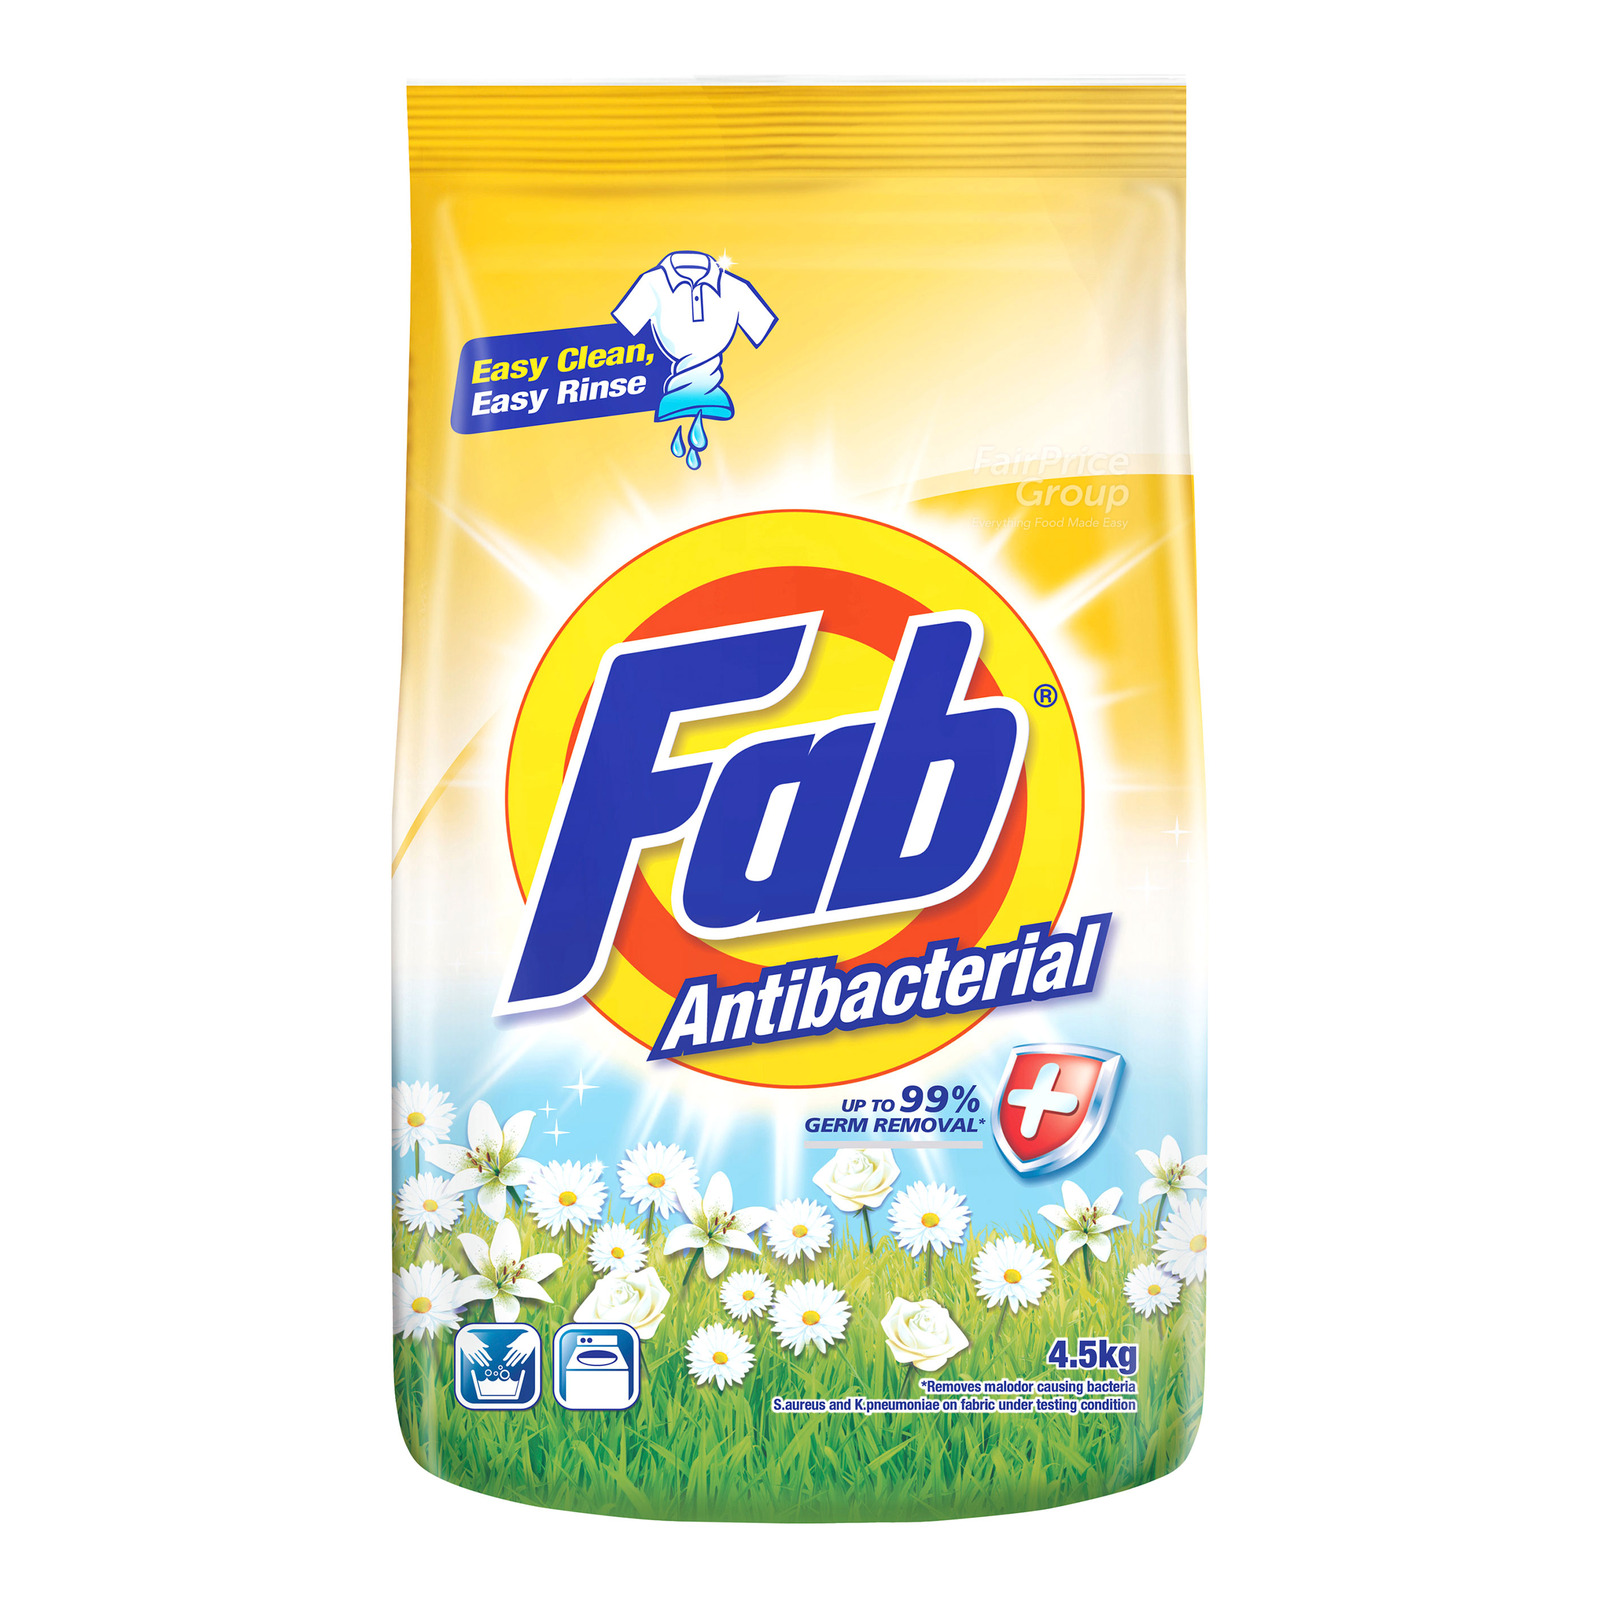 Fab Detergent Powder - Anti-Bacterial